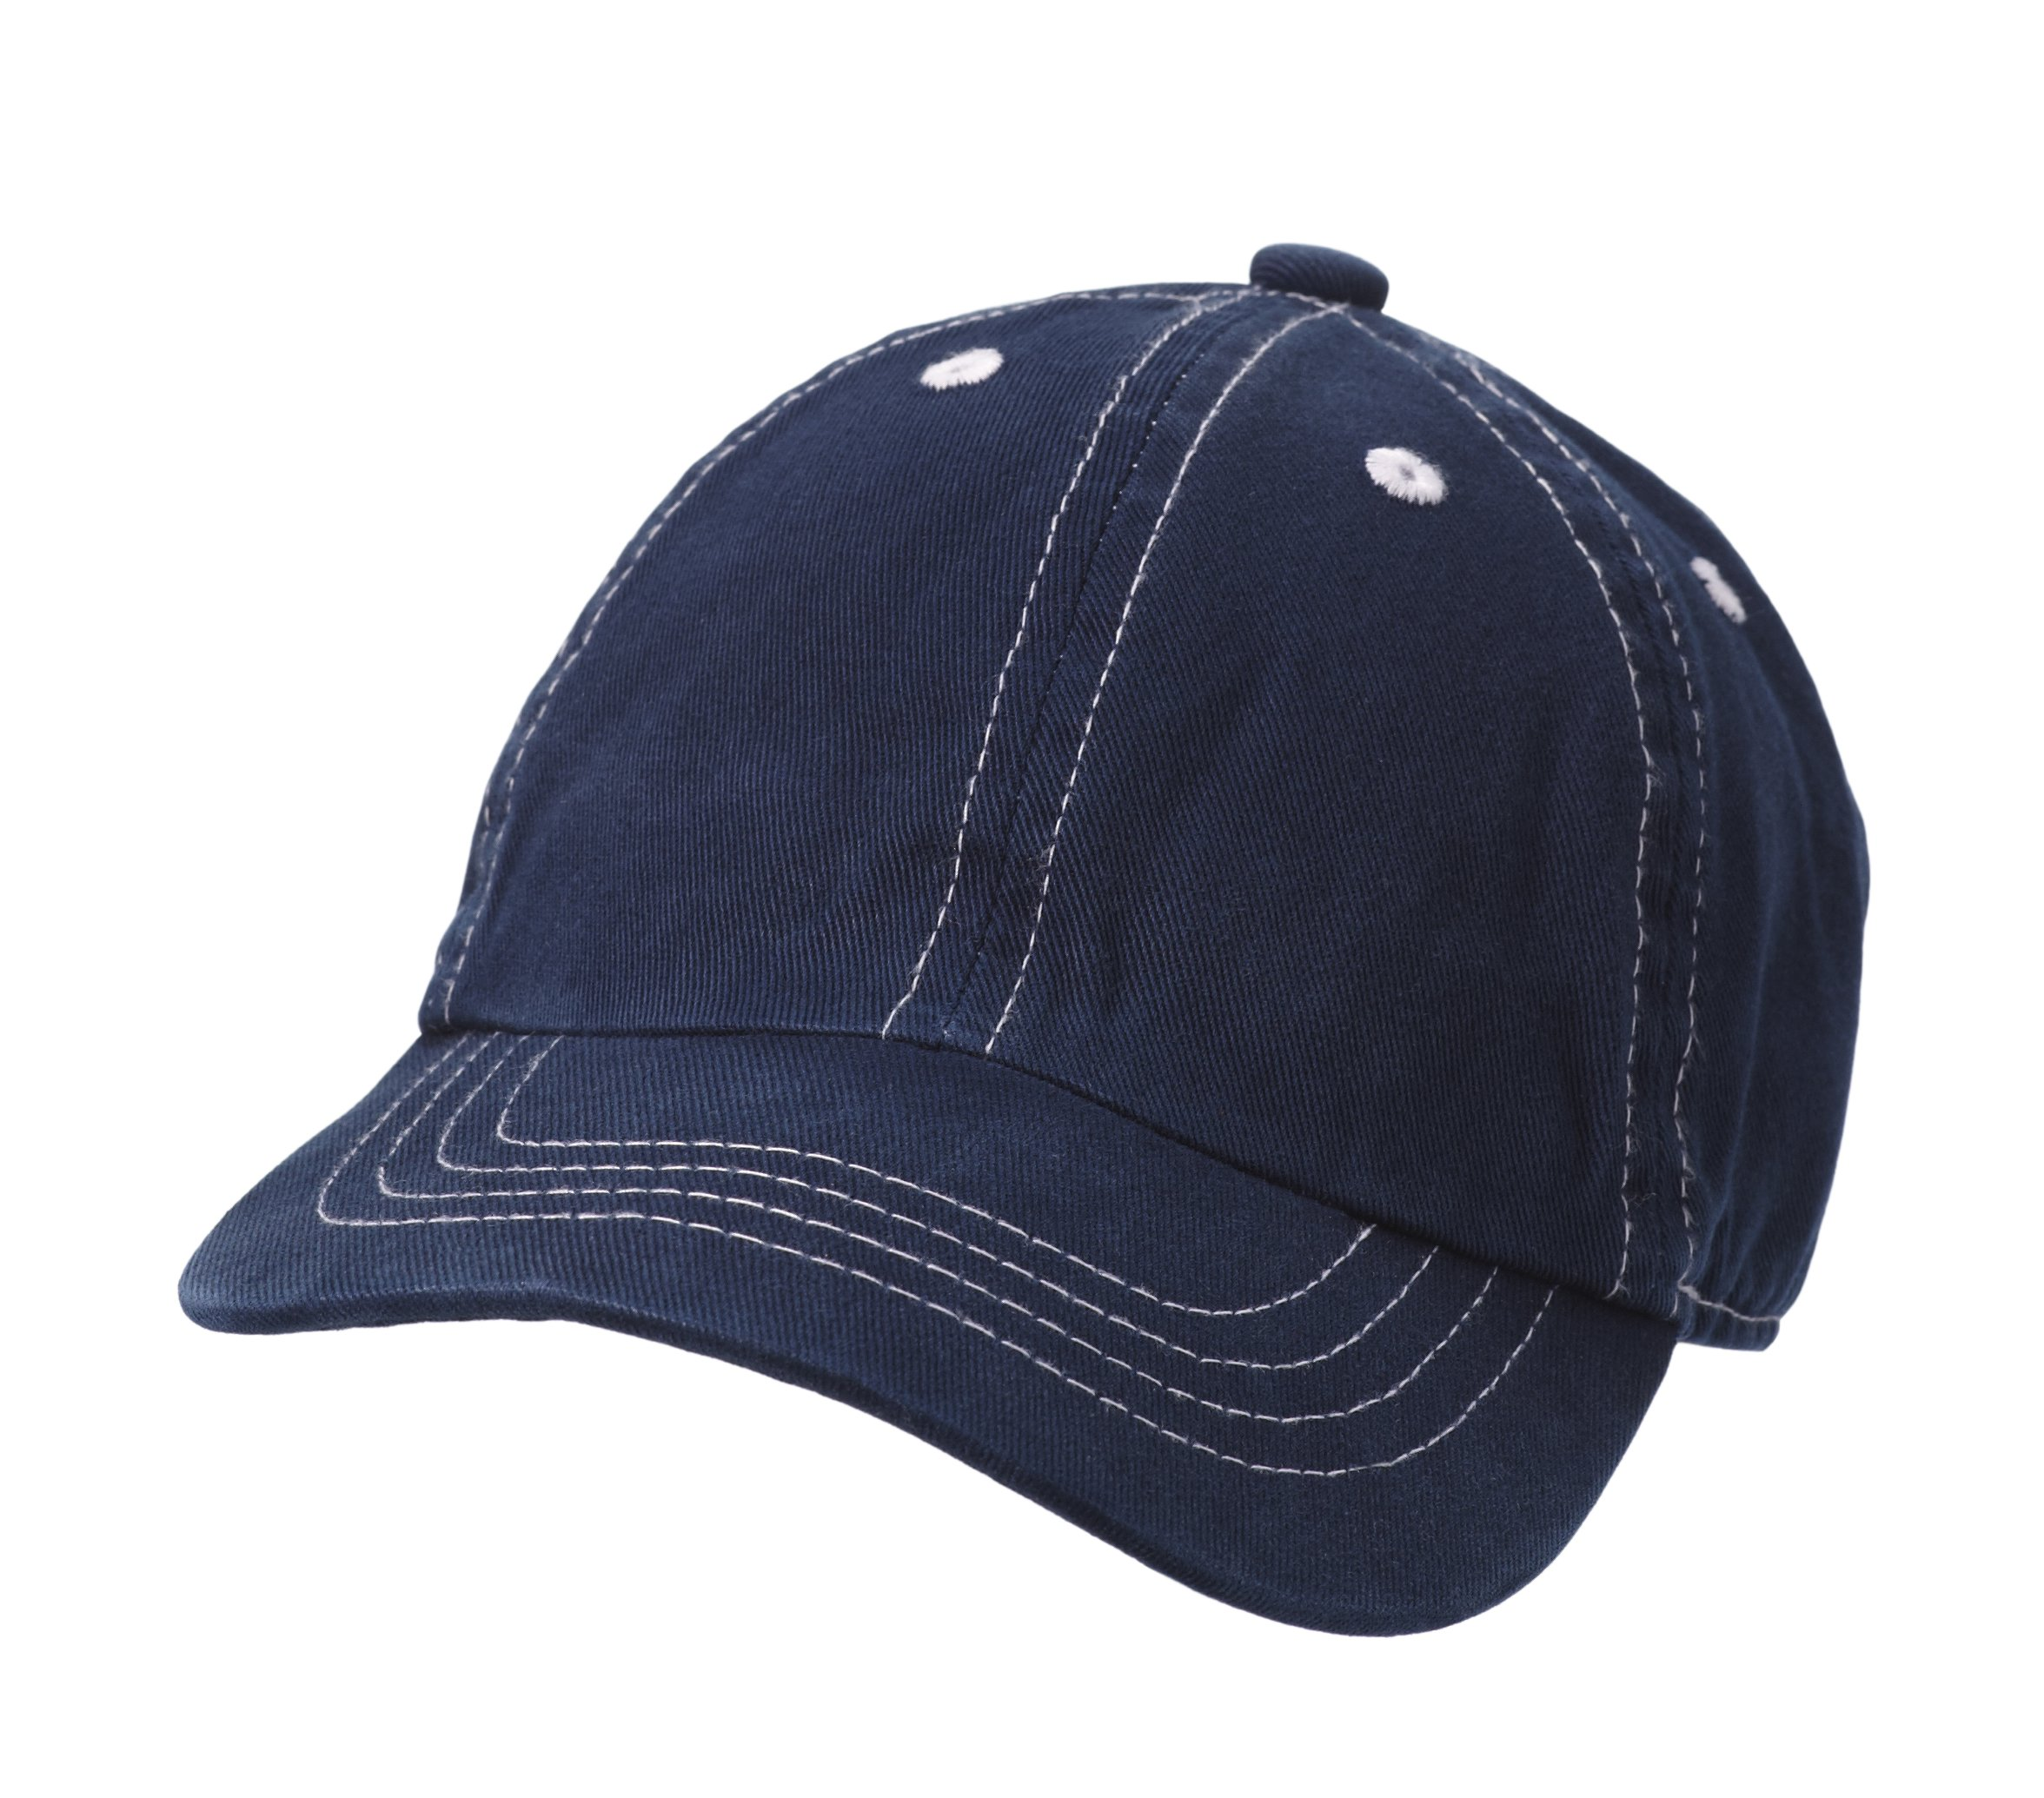 City Threads Baby Solid Baseball Hat Sun Protection SPF Beach Summer - Navy - S(0-6M) by City Threads (Image #1)